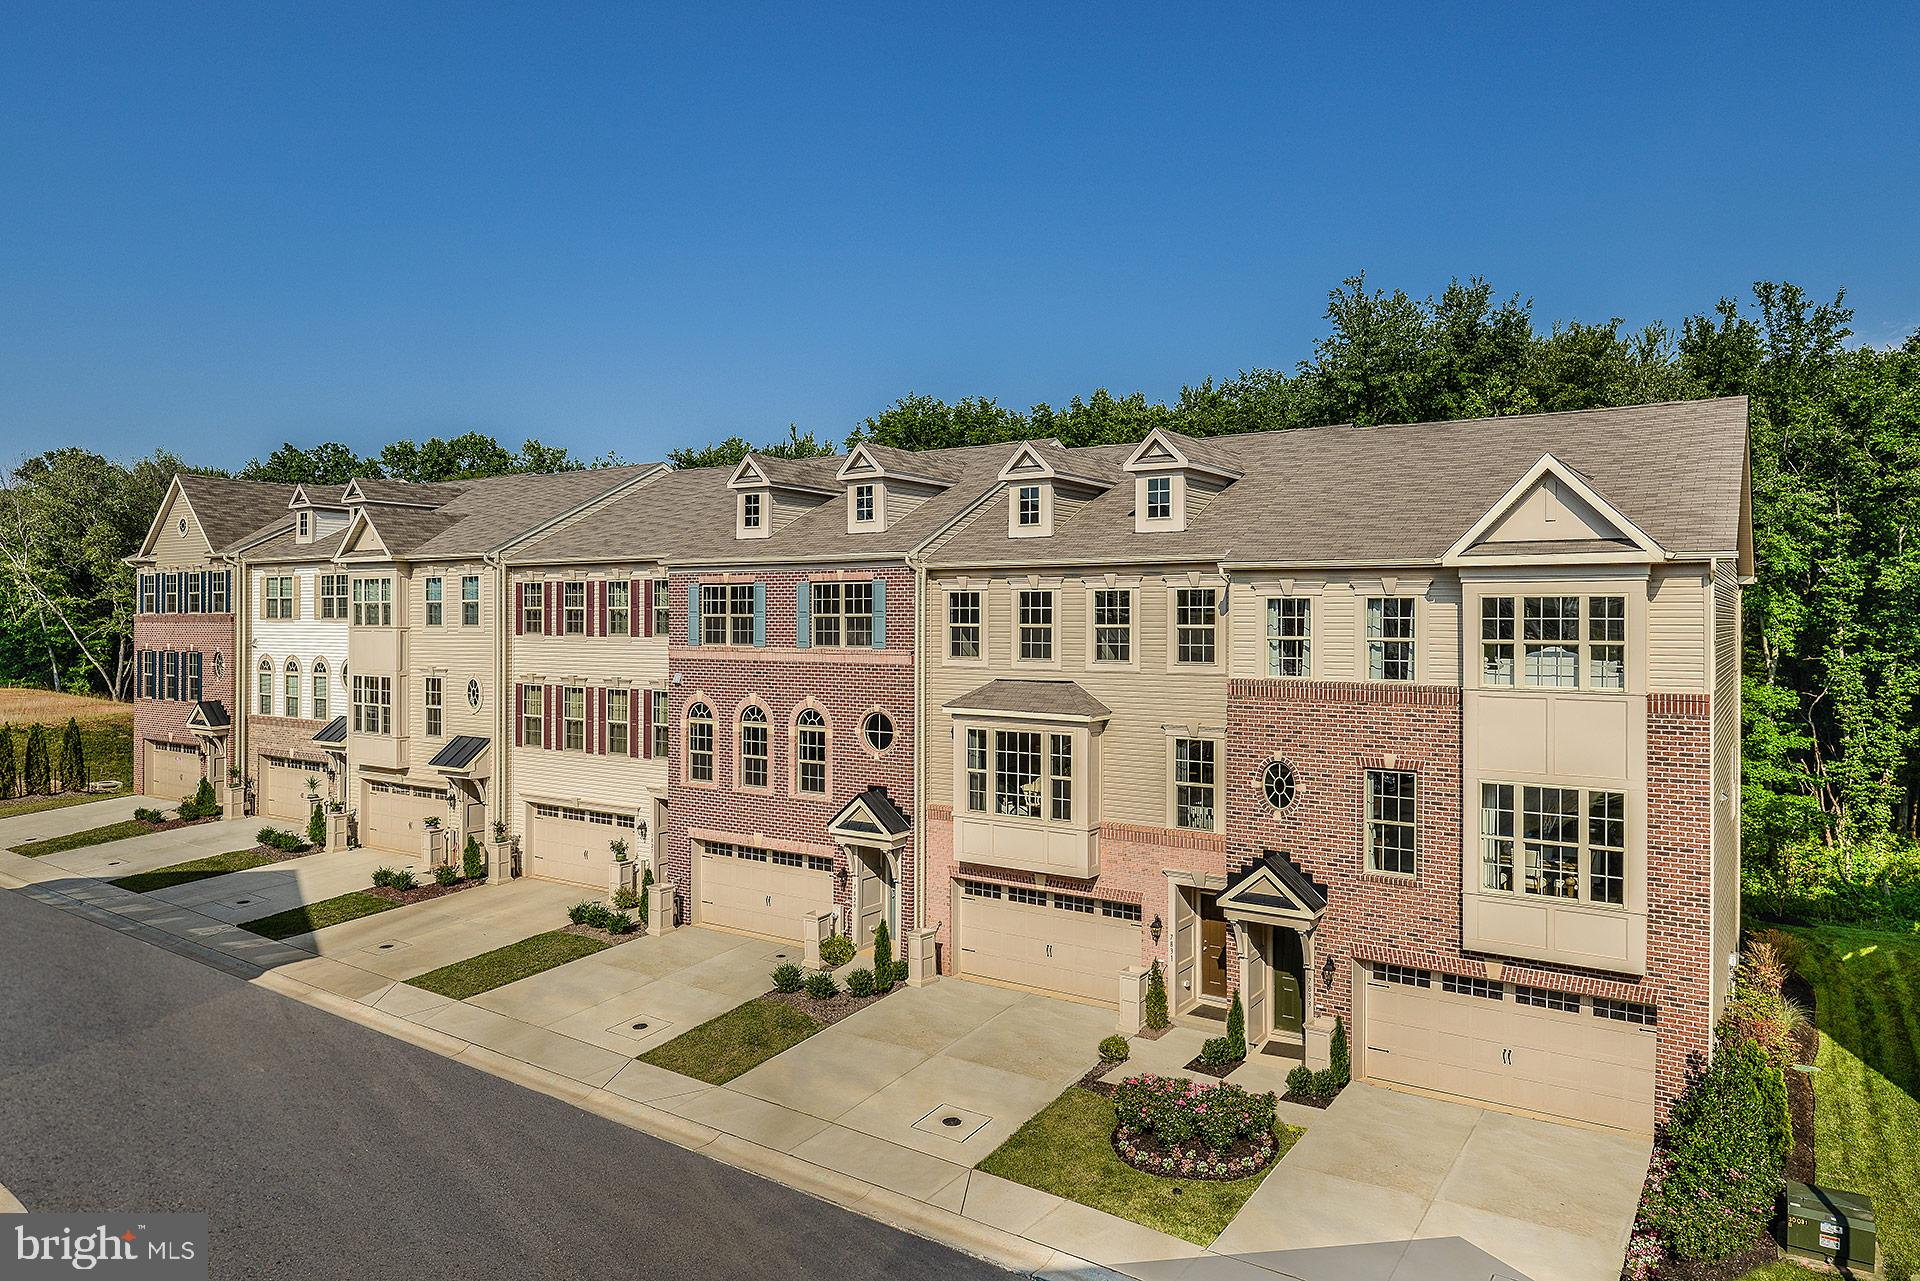 7833 RAPPAPORT DRIVE, JESSUP, MD 20794